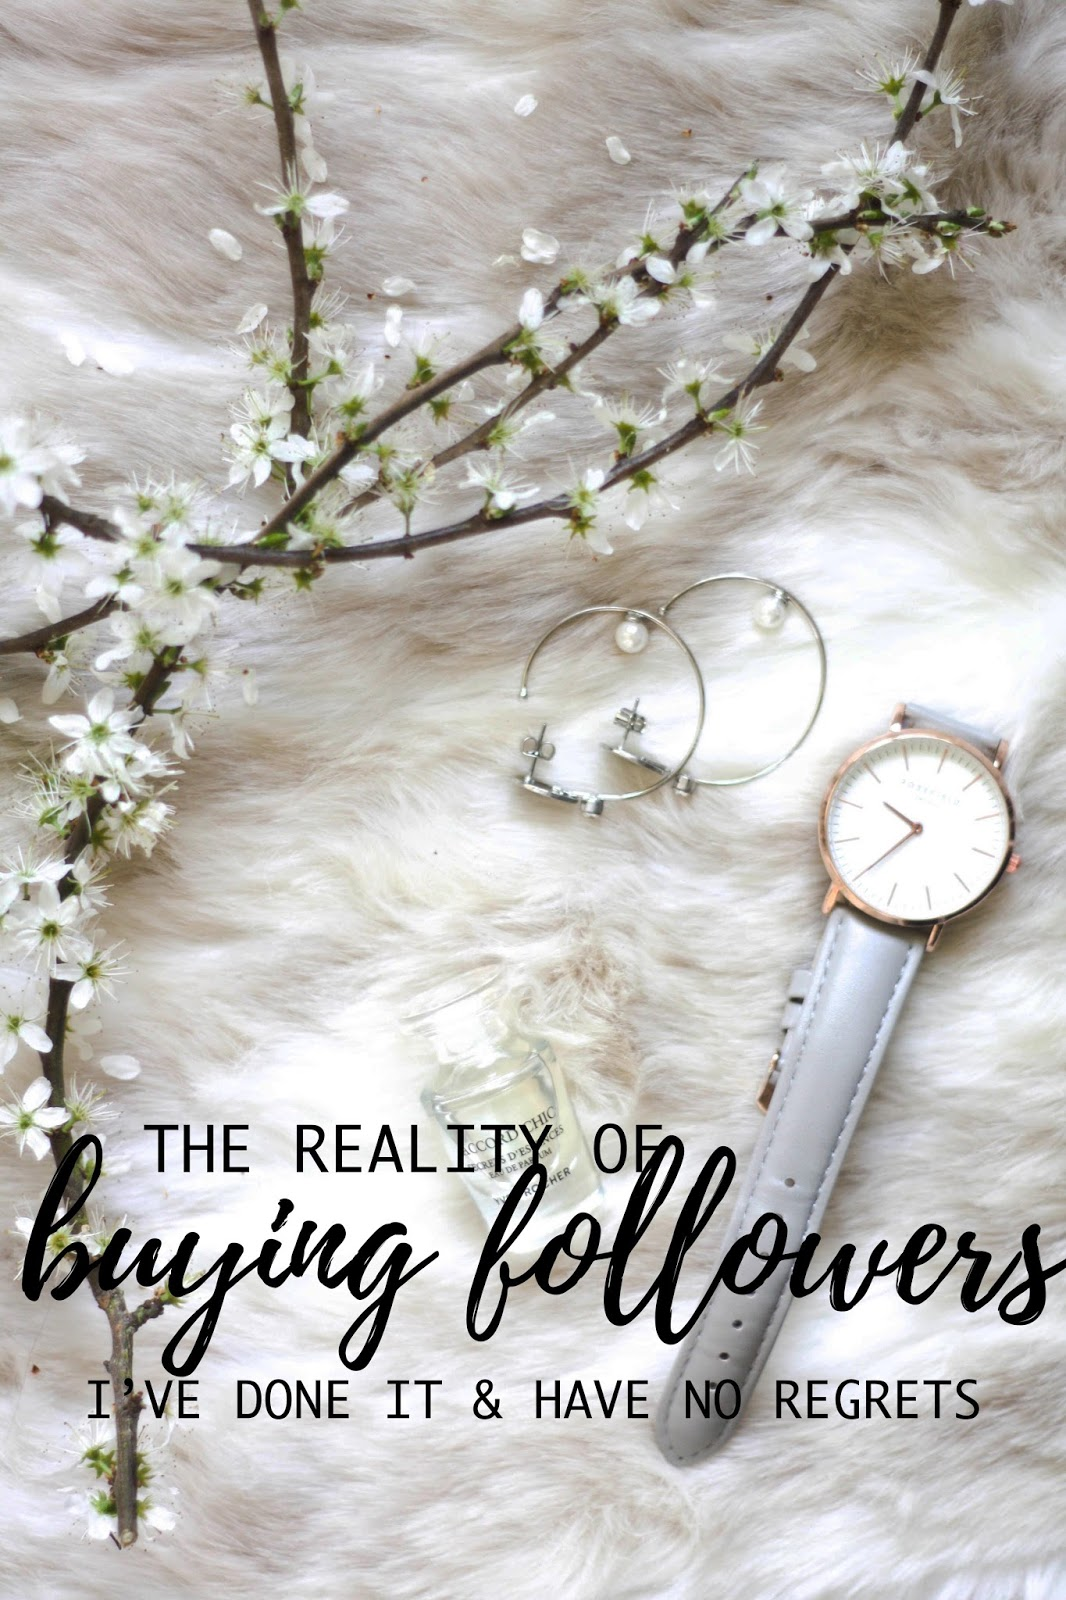 The reality of buying followers (I've done it & have no regrets!)